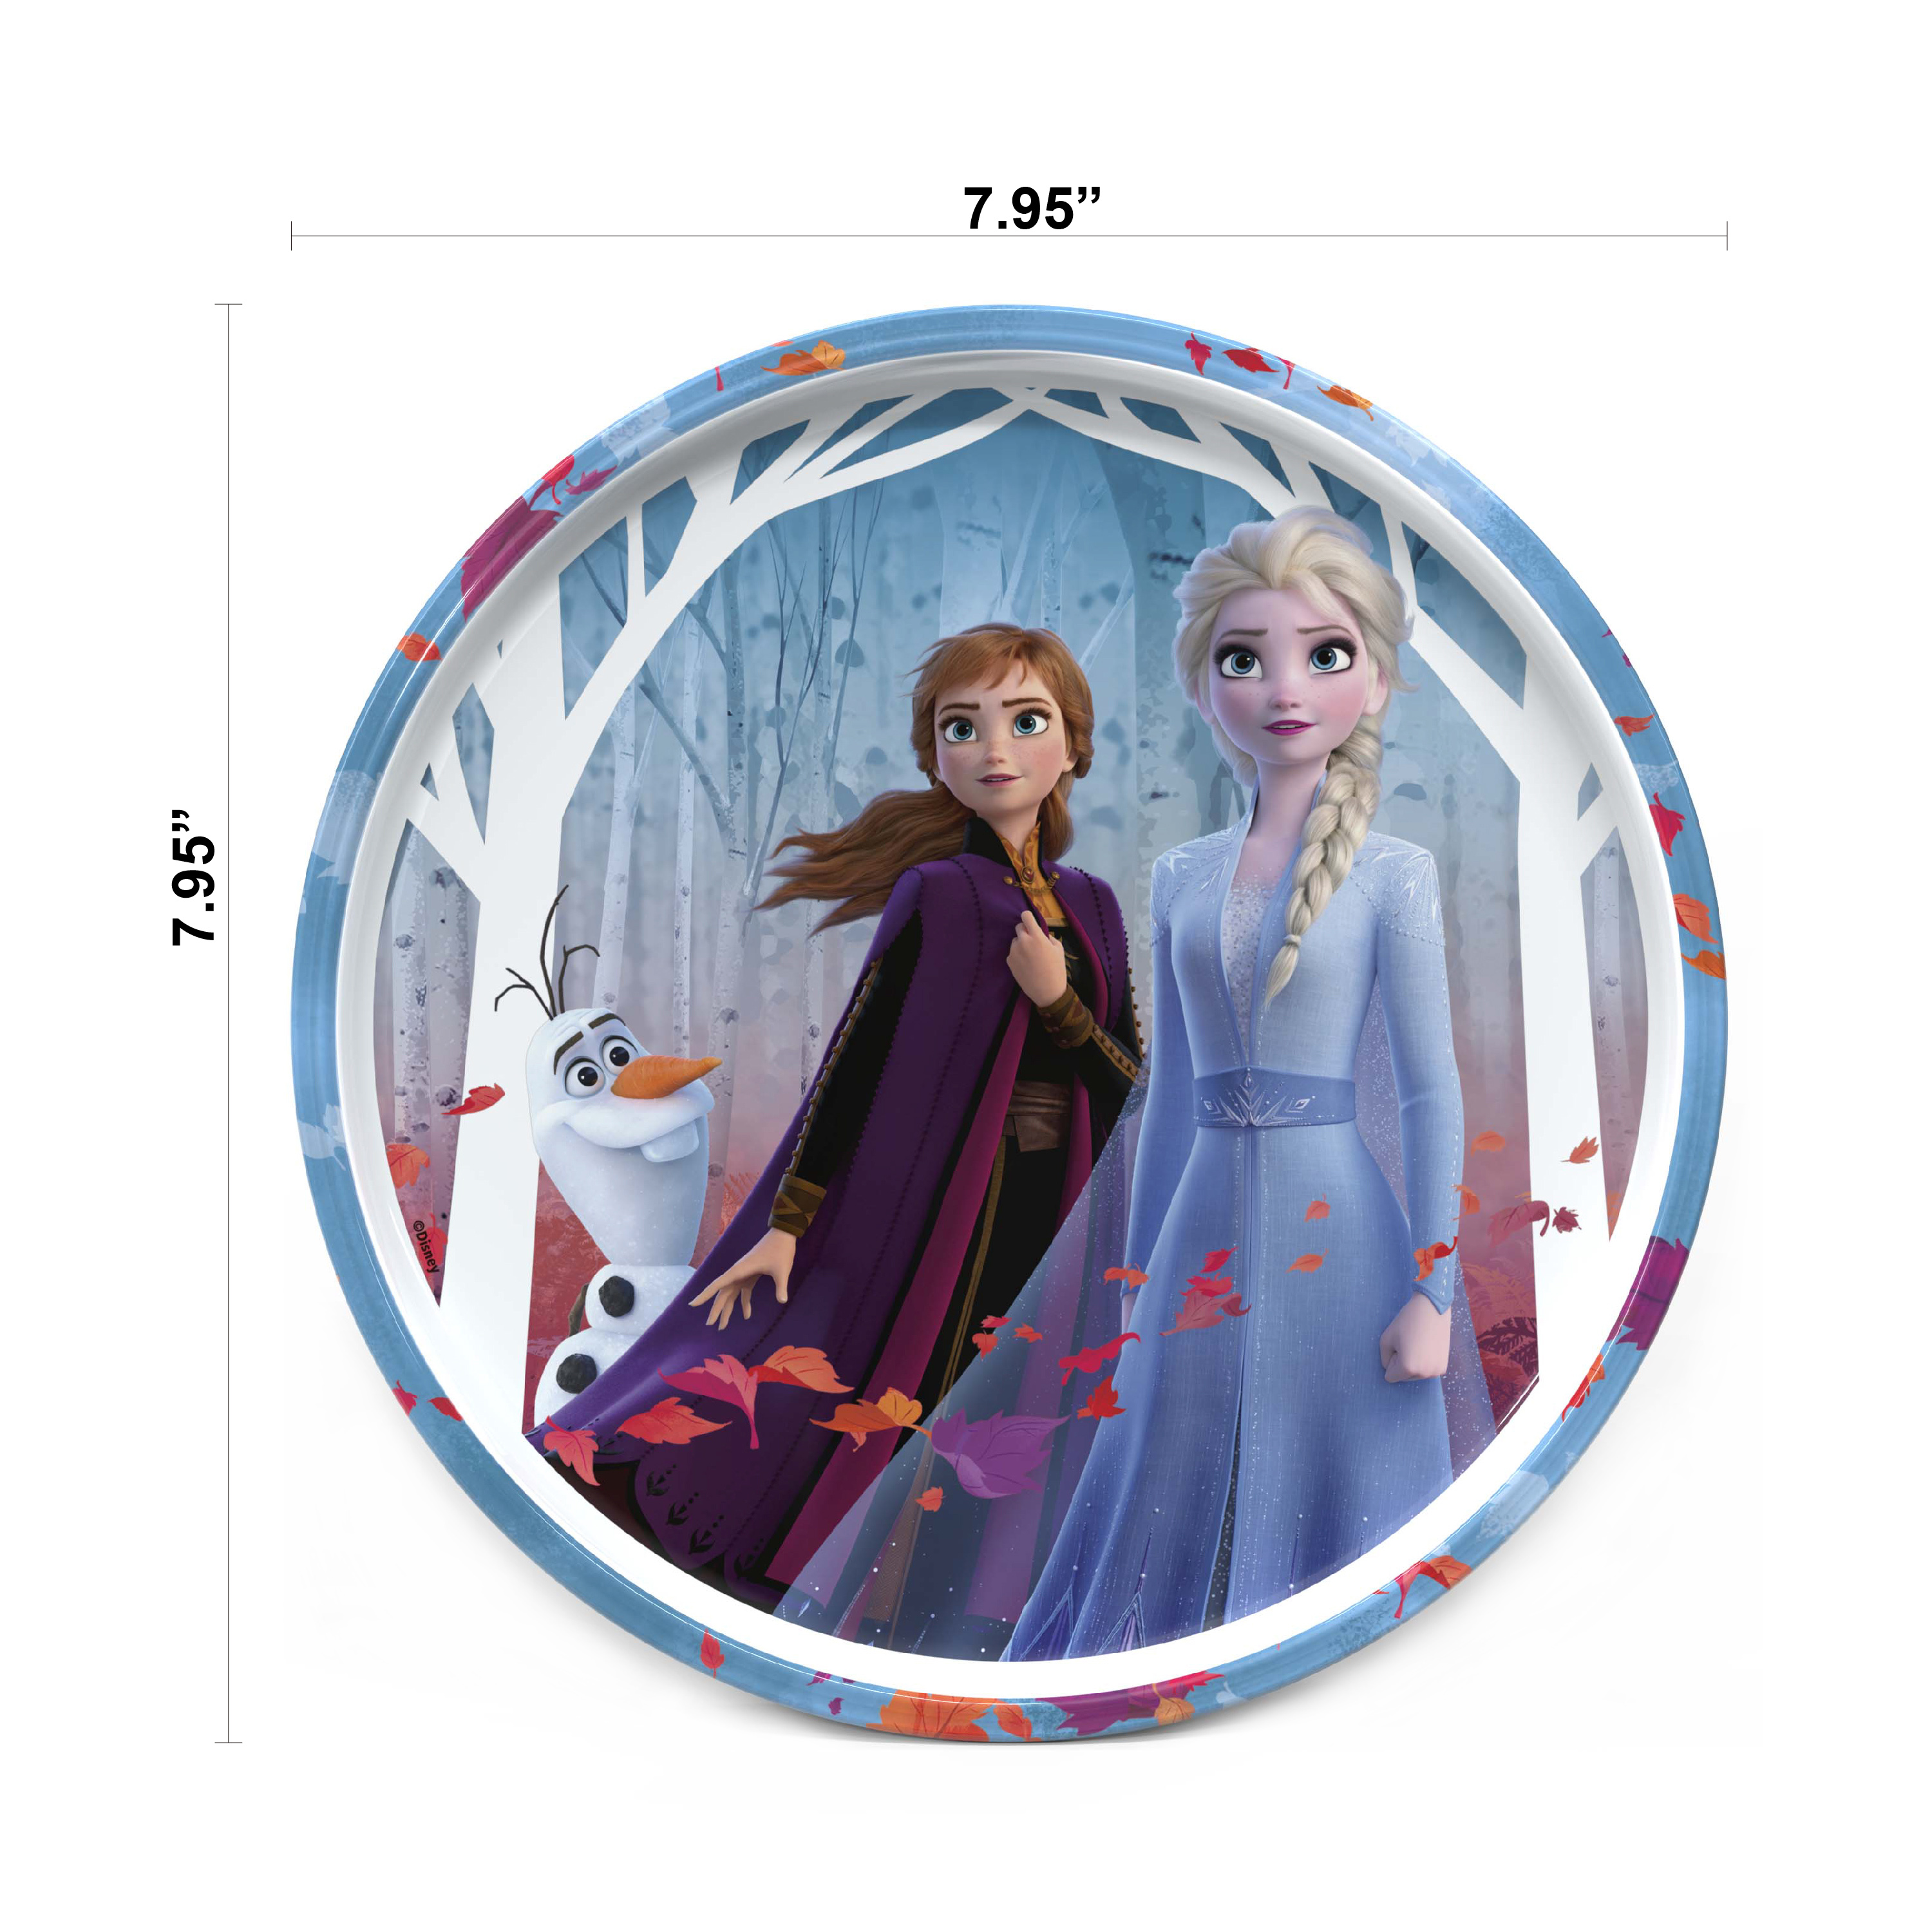 Disney Frozen 2 Movie Dinnerware Set, Anna and Elsa, 5-piece set slideshow image 7